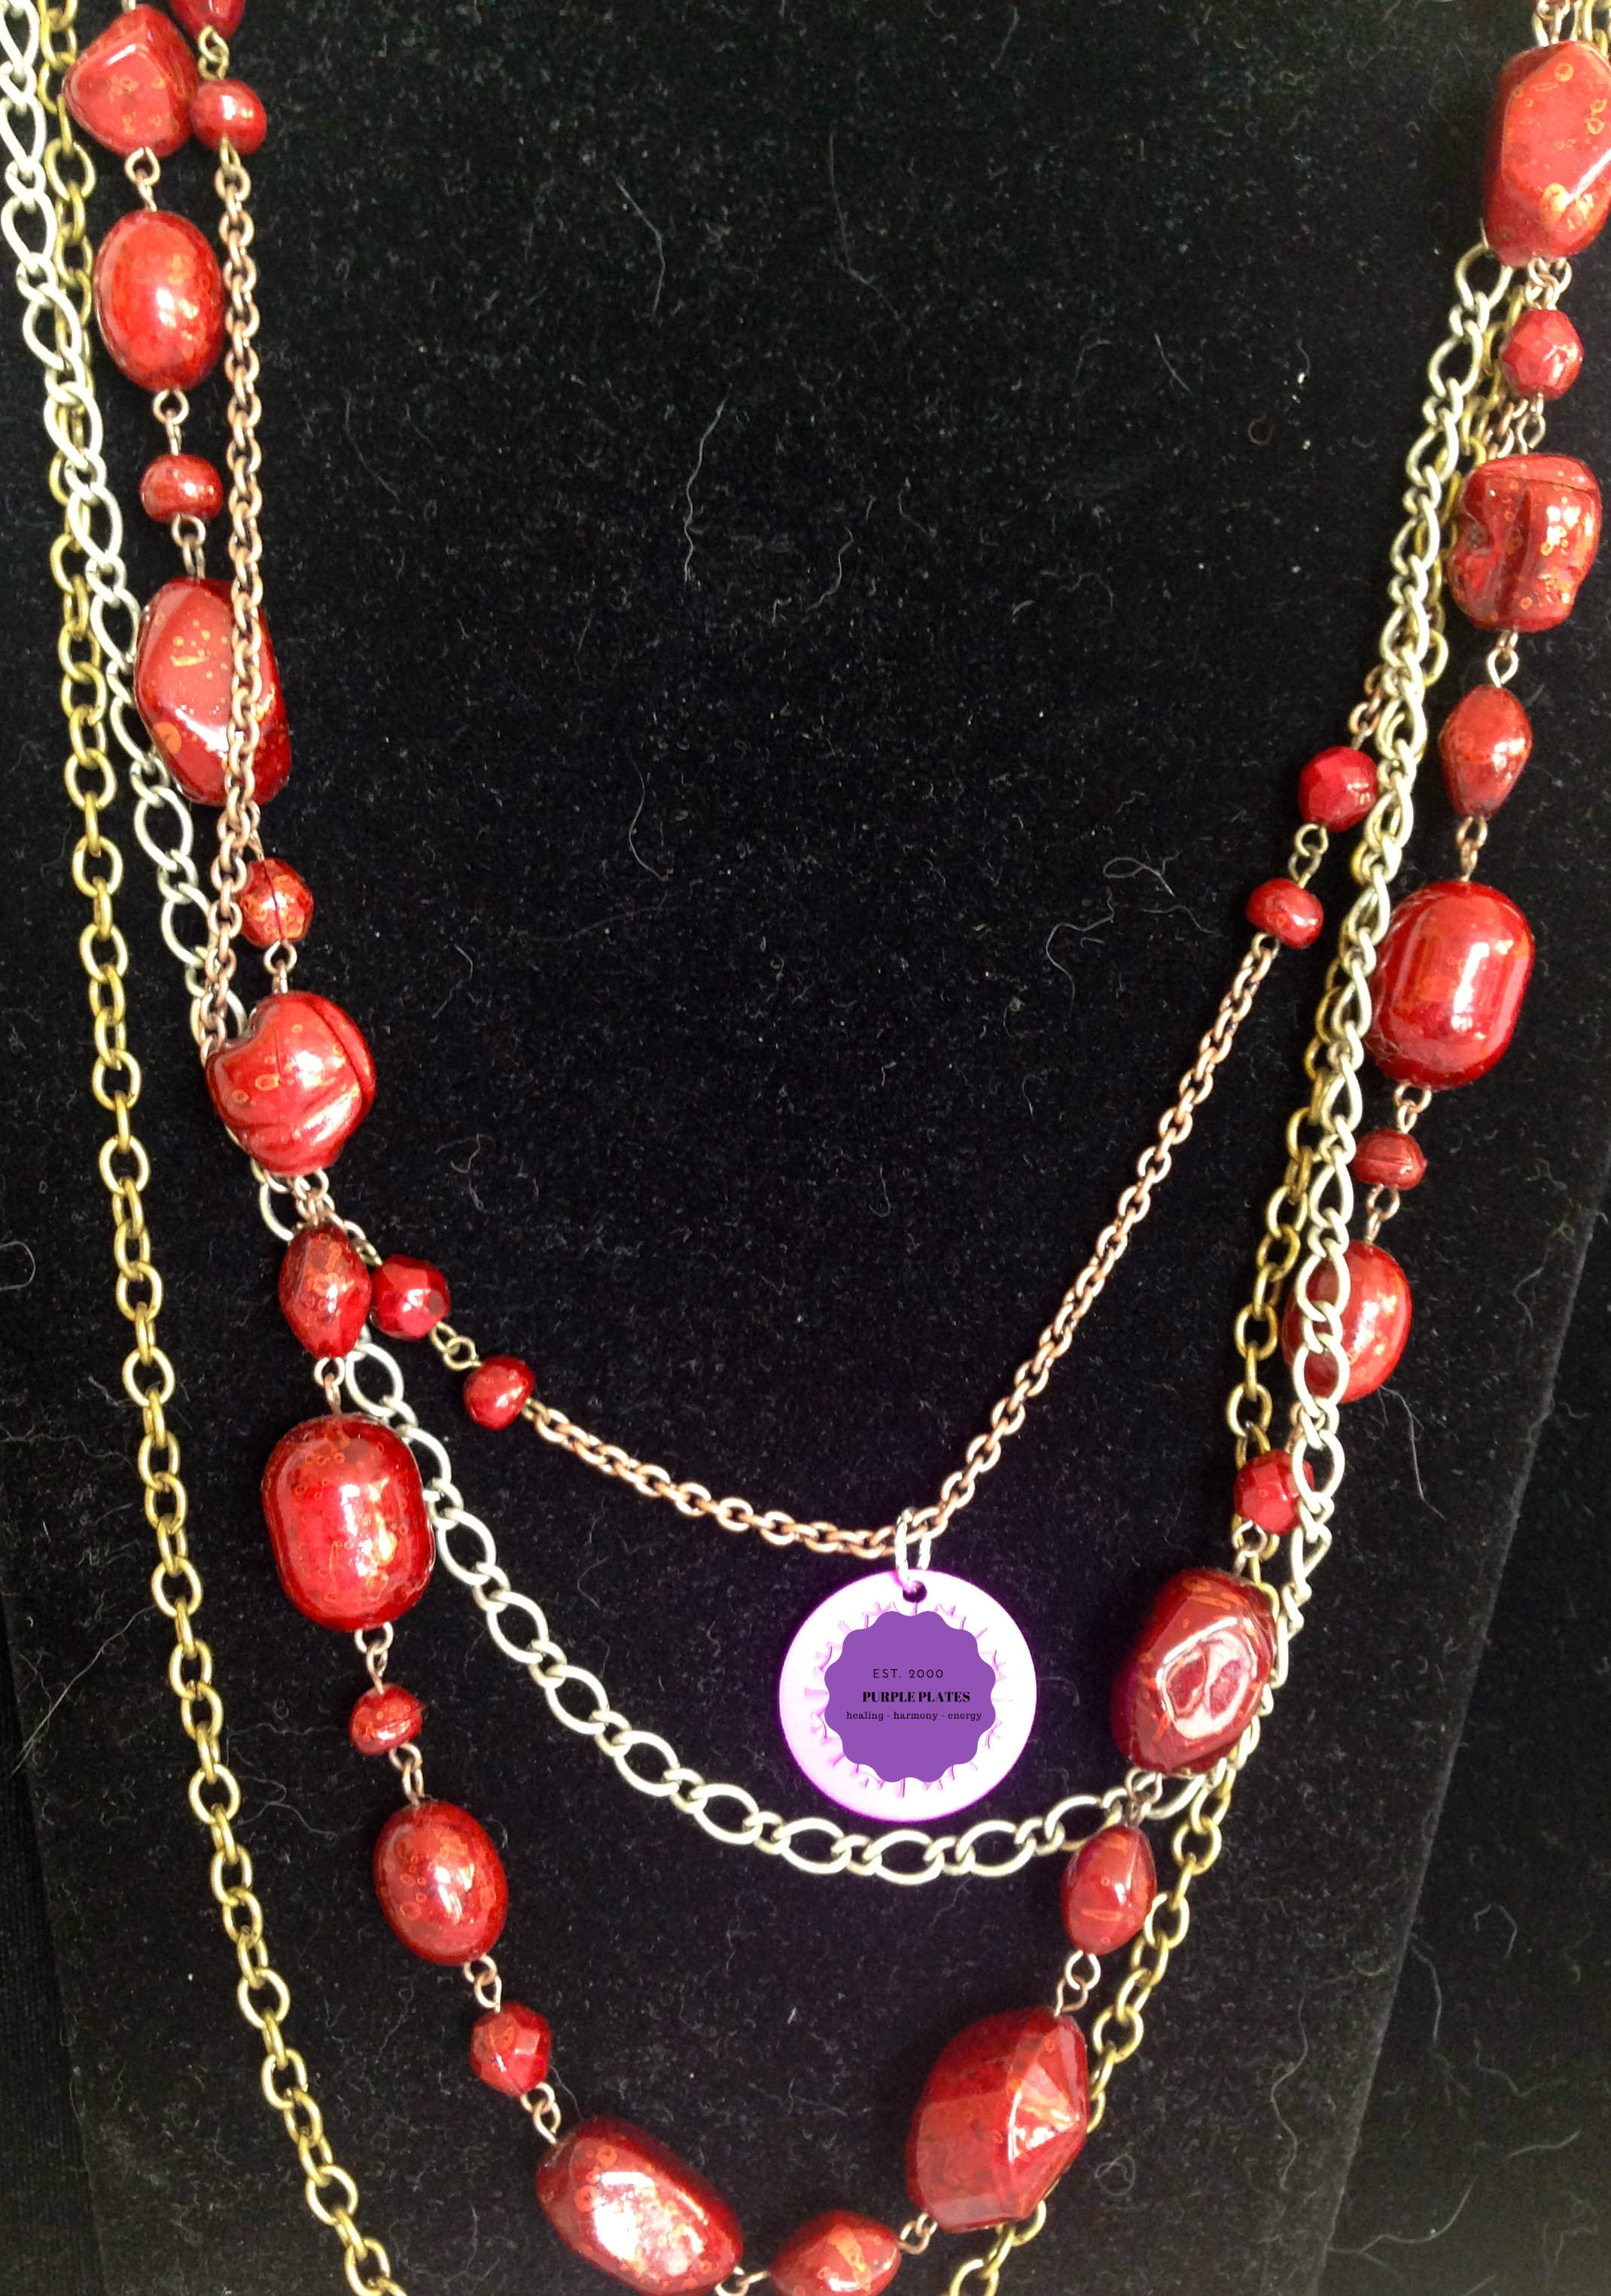 Morrocan Beads with Energy Disk Necklace